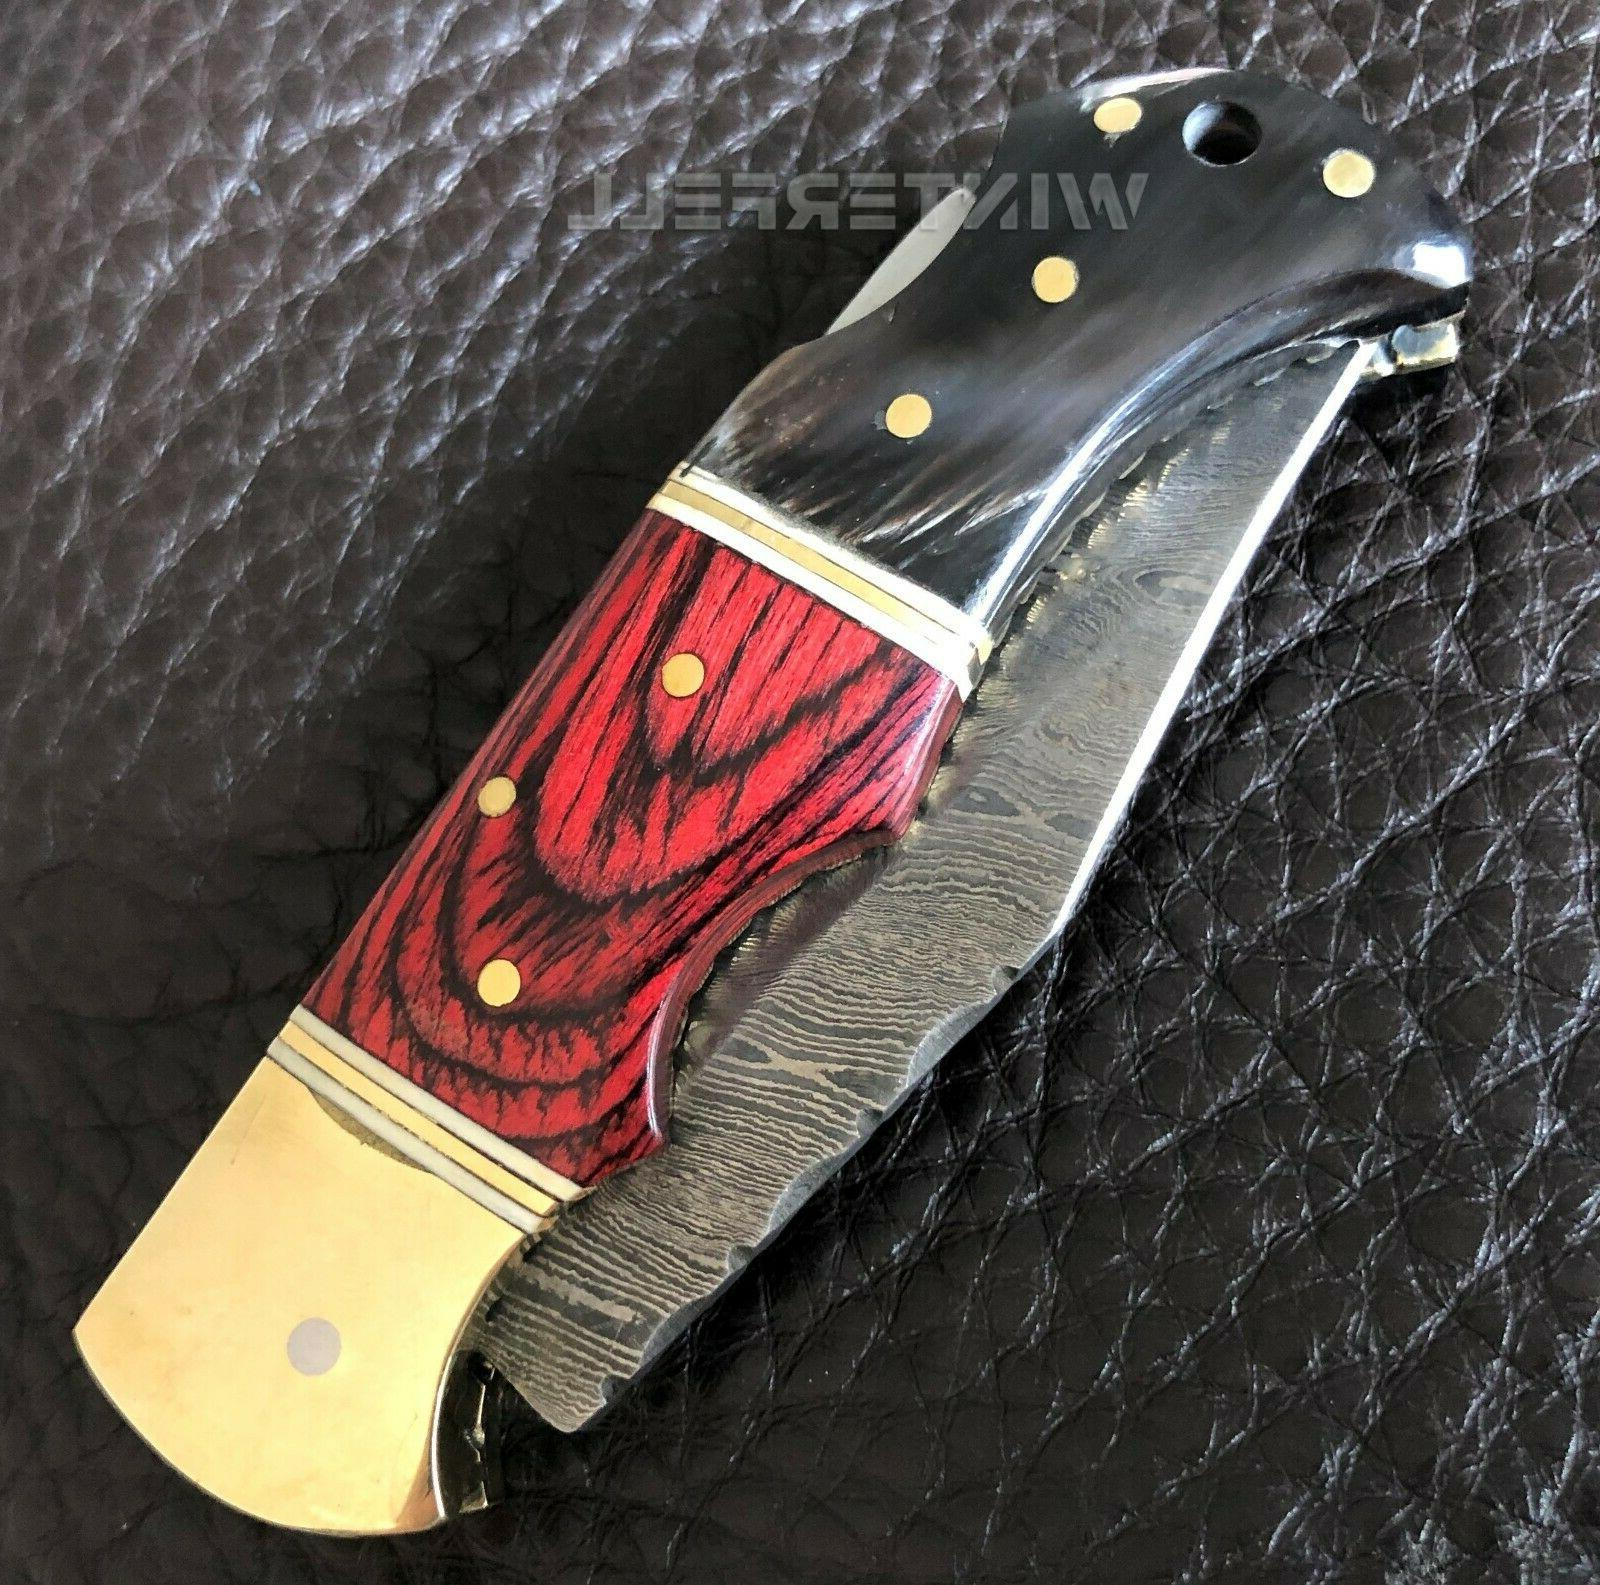 "Damascus Steel Pocket Knife 6.5"" With Leather"